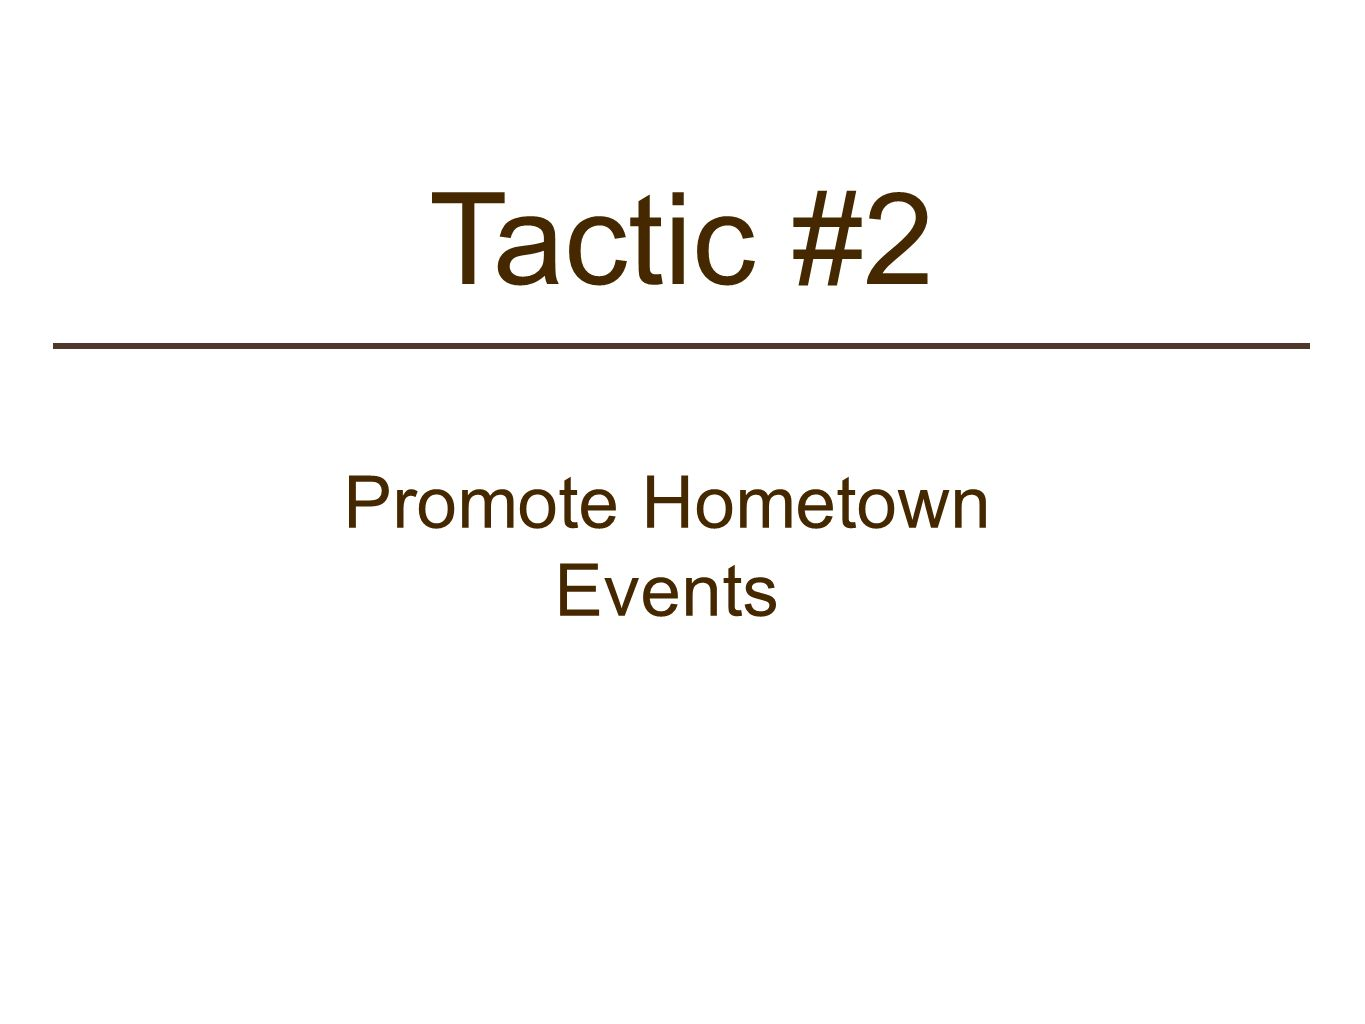 Tactic #2 Promote Hometown Events